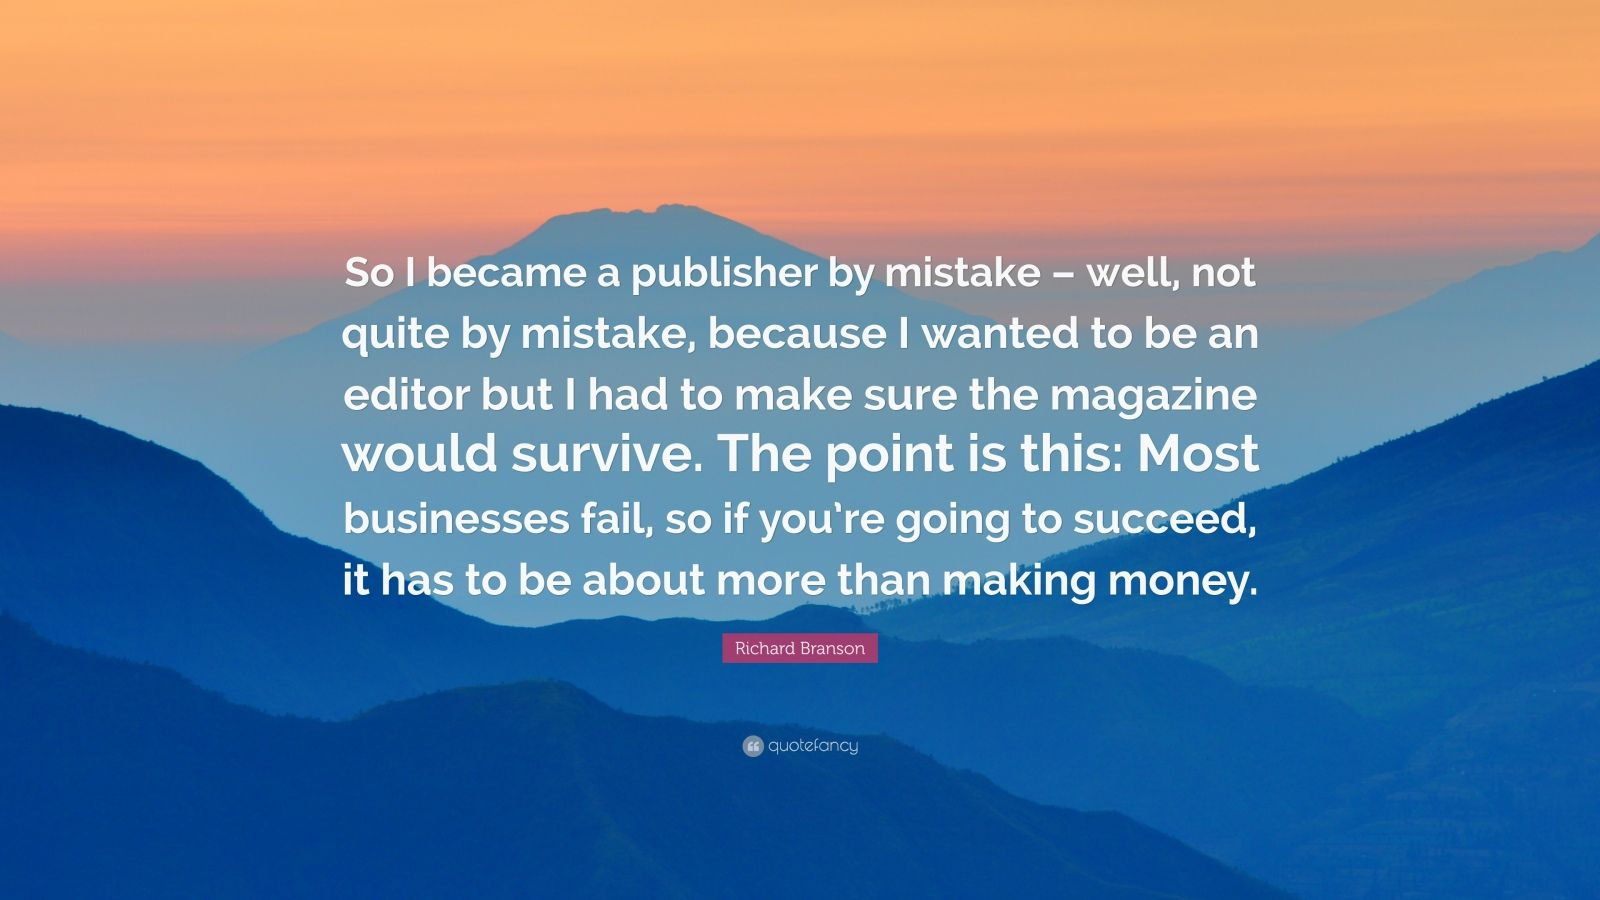 "Richard Branson Quote: ""So I became a publisher by mistake – well, not quite by mistake, because I wanted to be an editor but I had to make sure the magazine would survive. The point is this: Most businesses fail, so if you're going to succeed, it has to be about more than making money."""